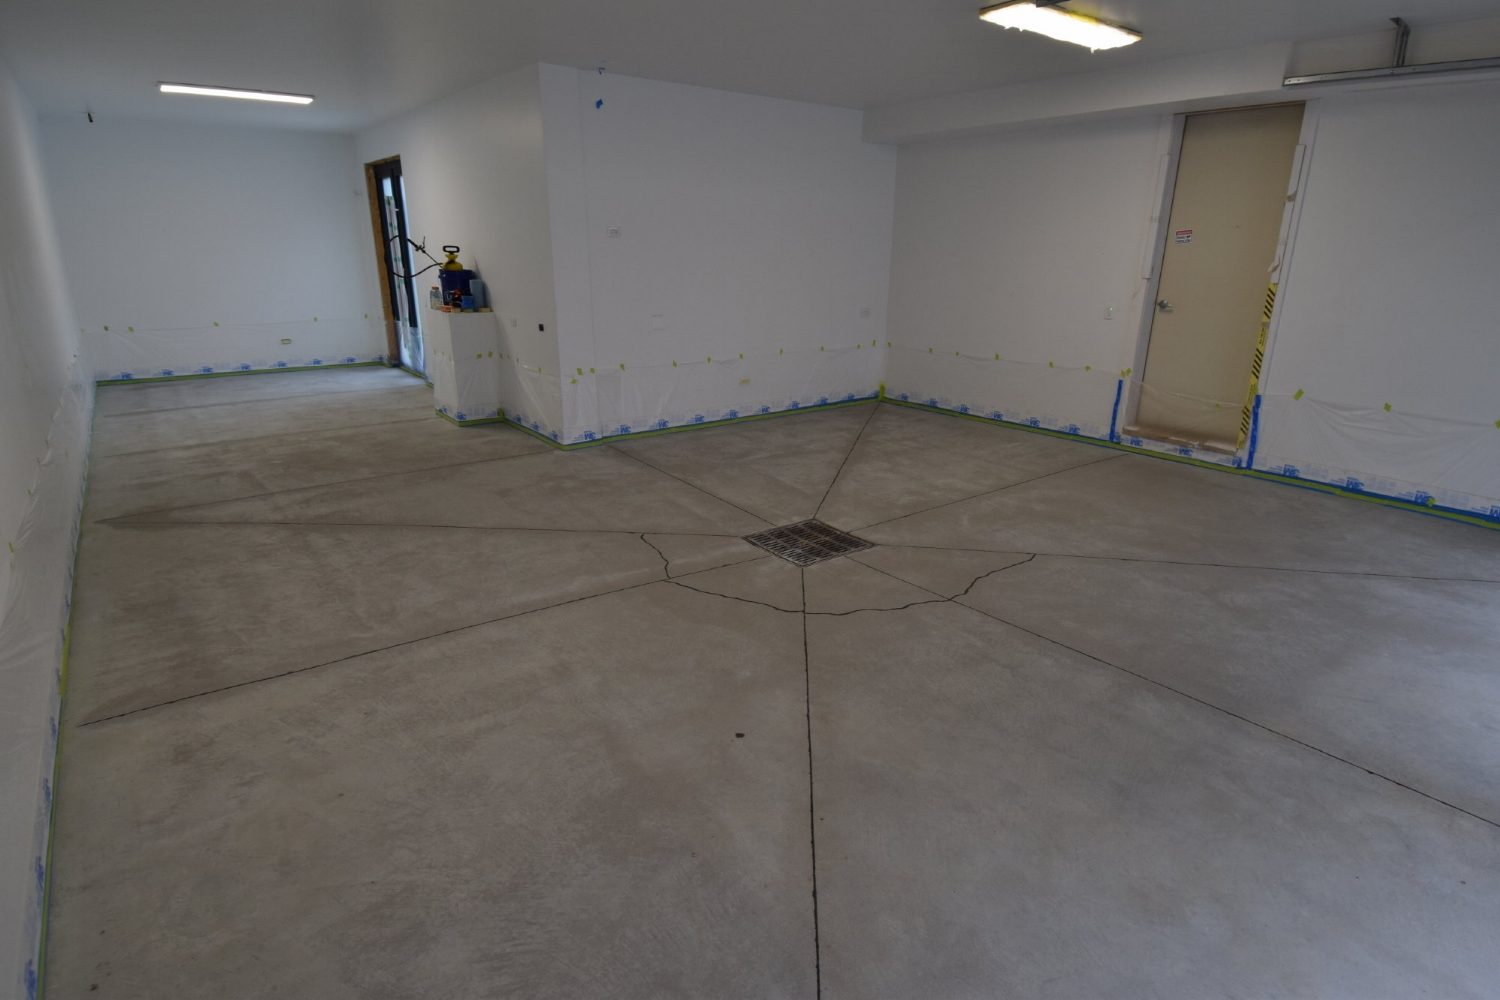 Garage Concrete Floor After Cleaning And Filling Joints Before Acid-Staining